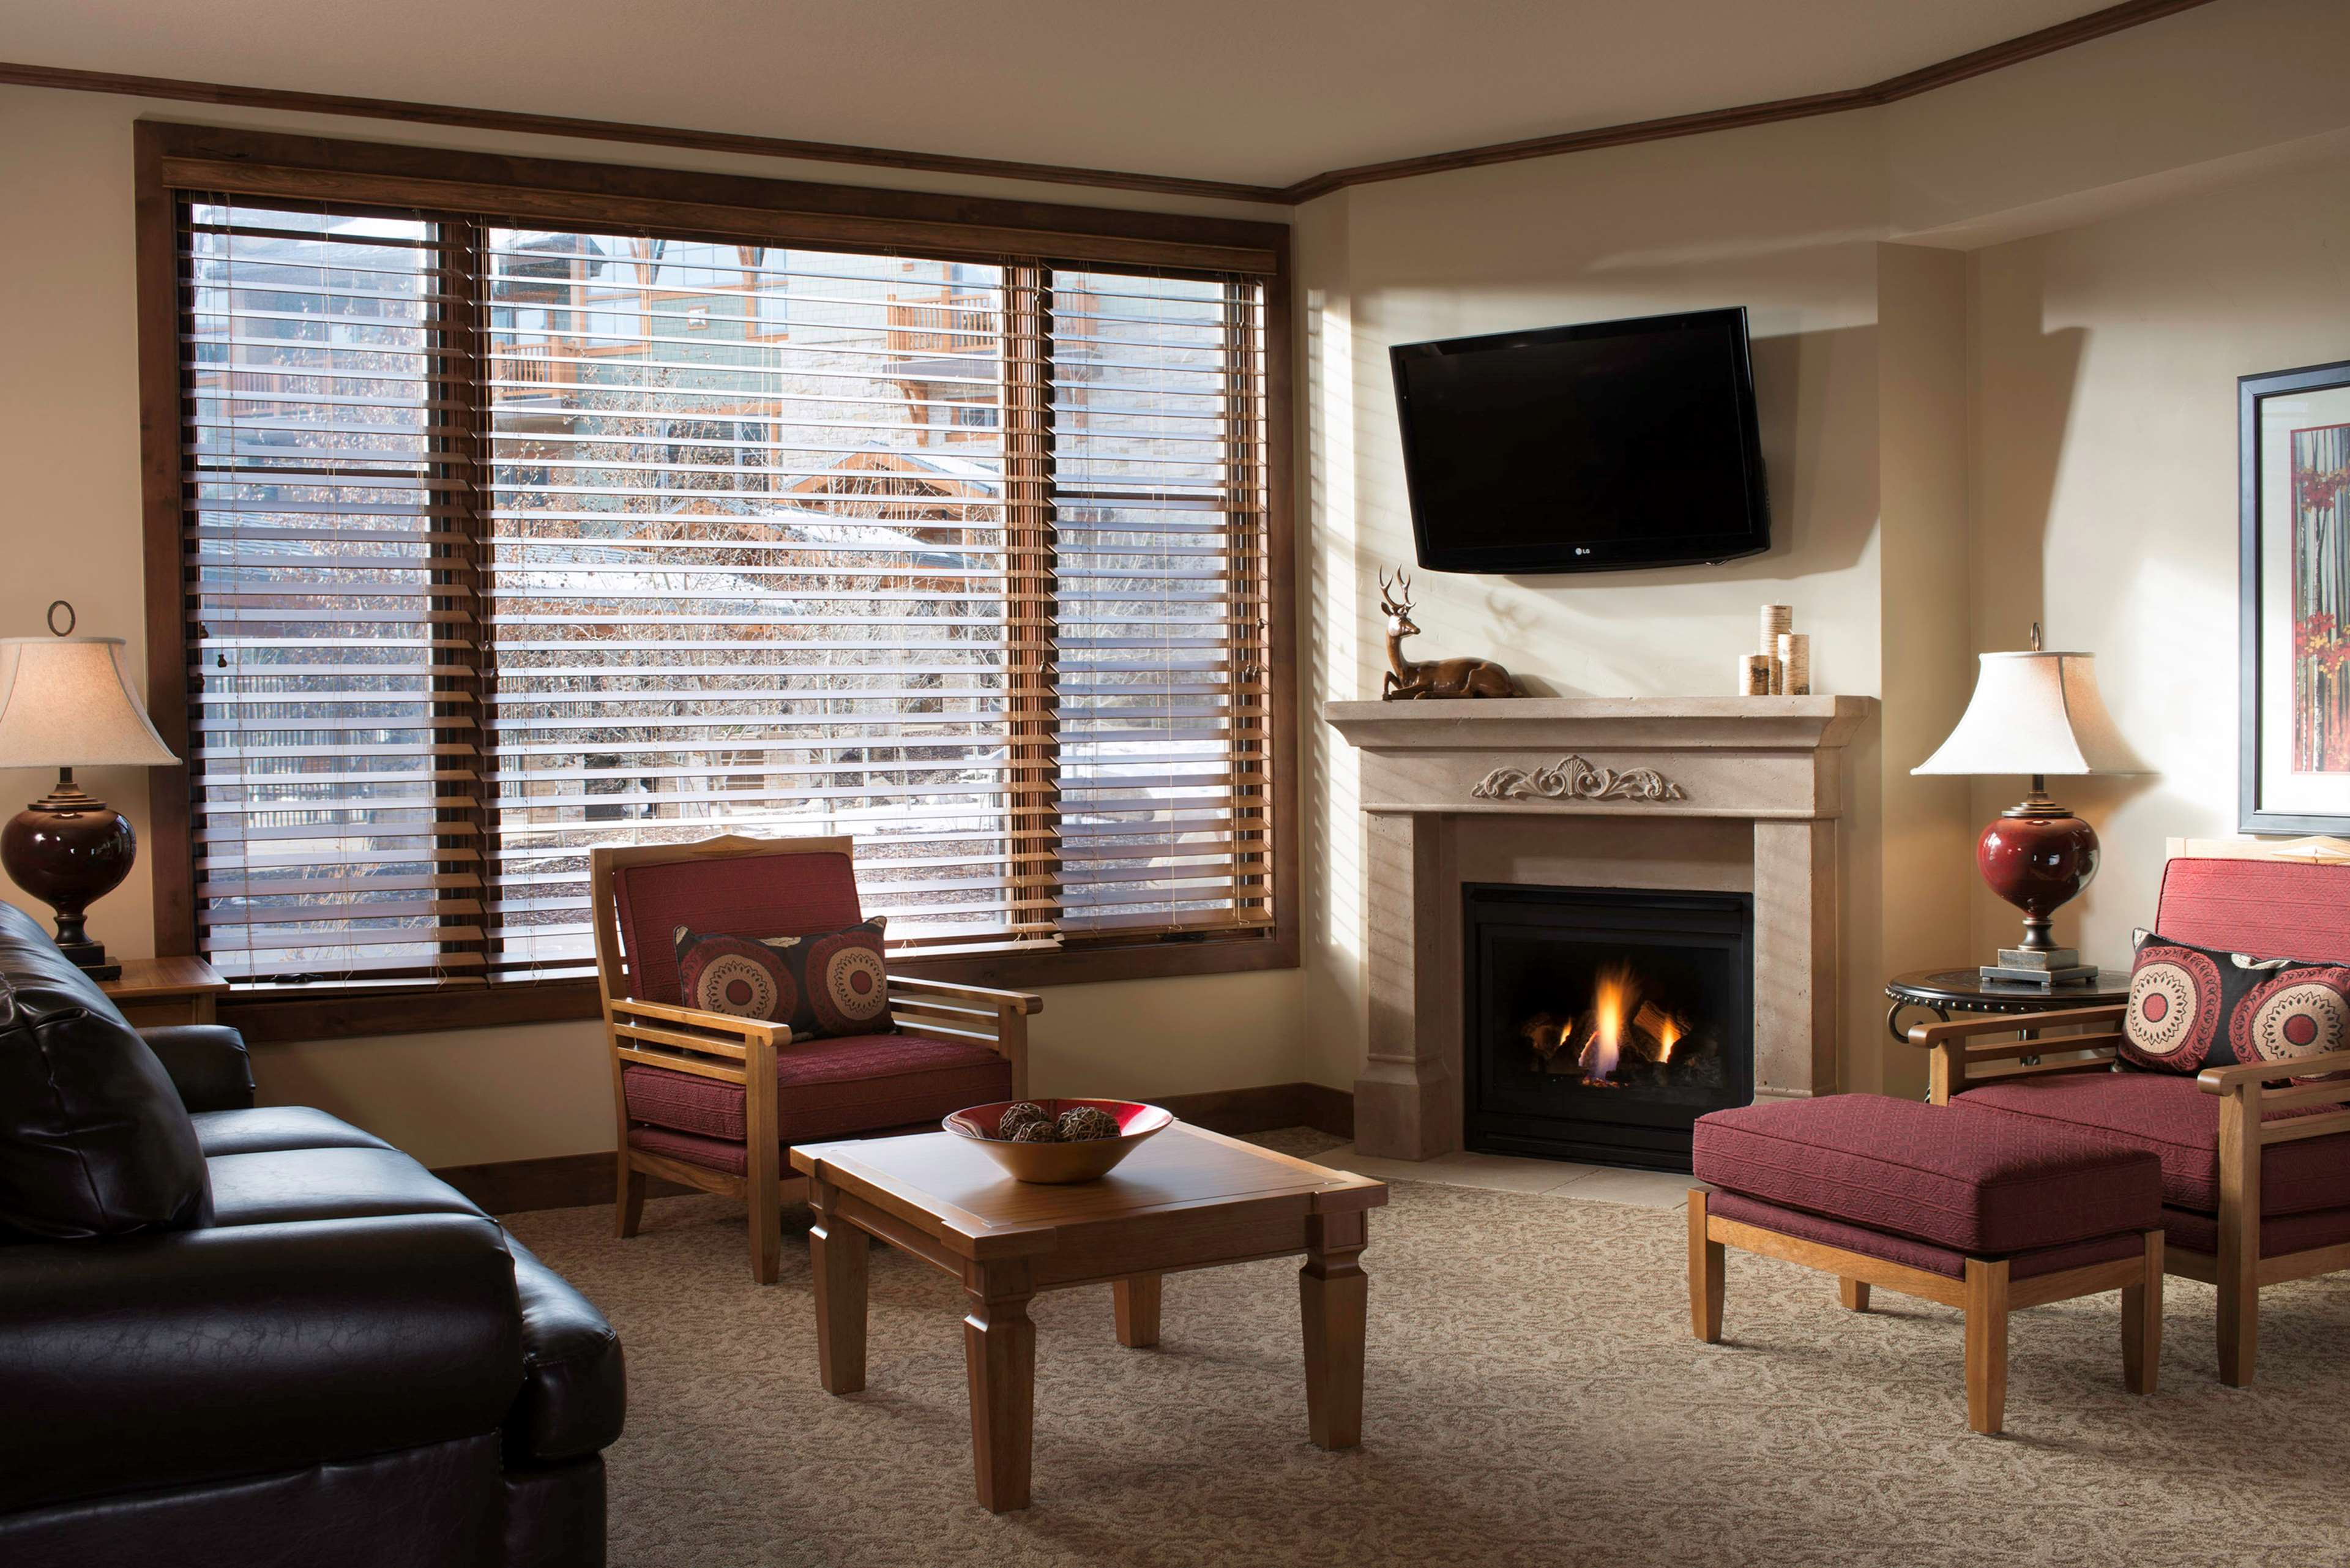 Sunrise Lodge by Hilton Grand Vacations image 22